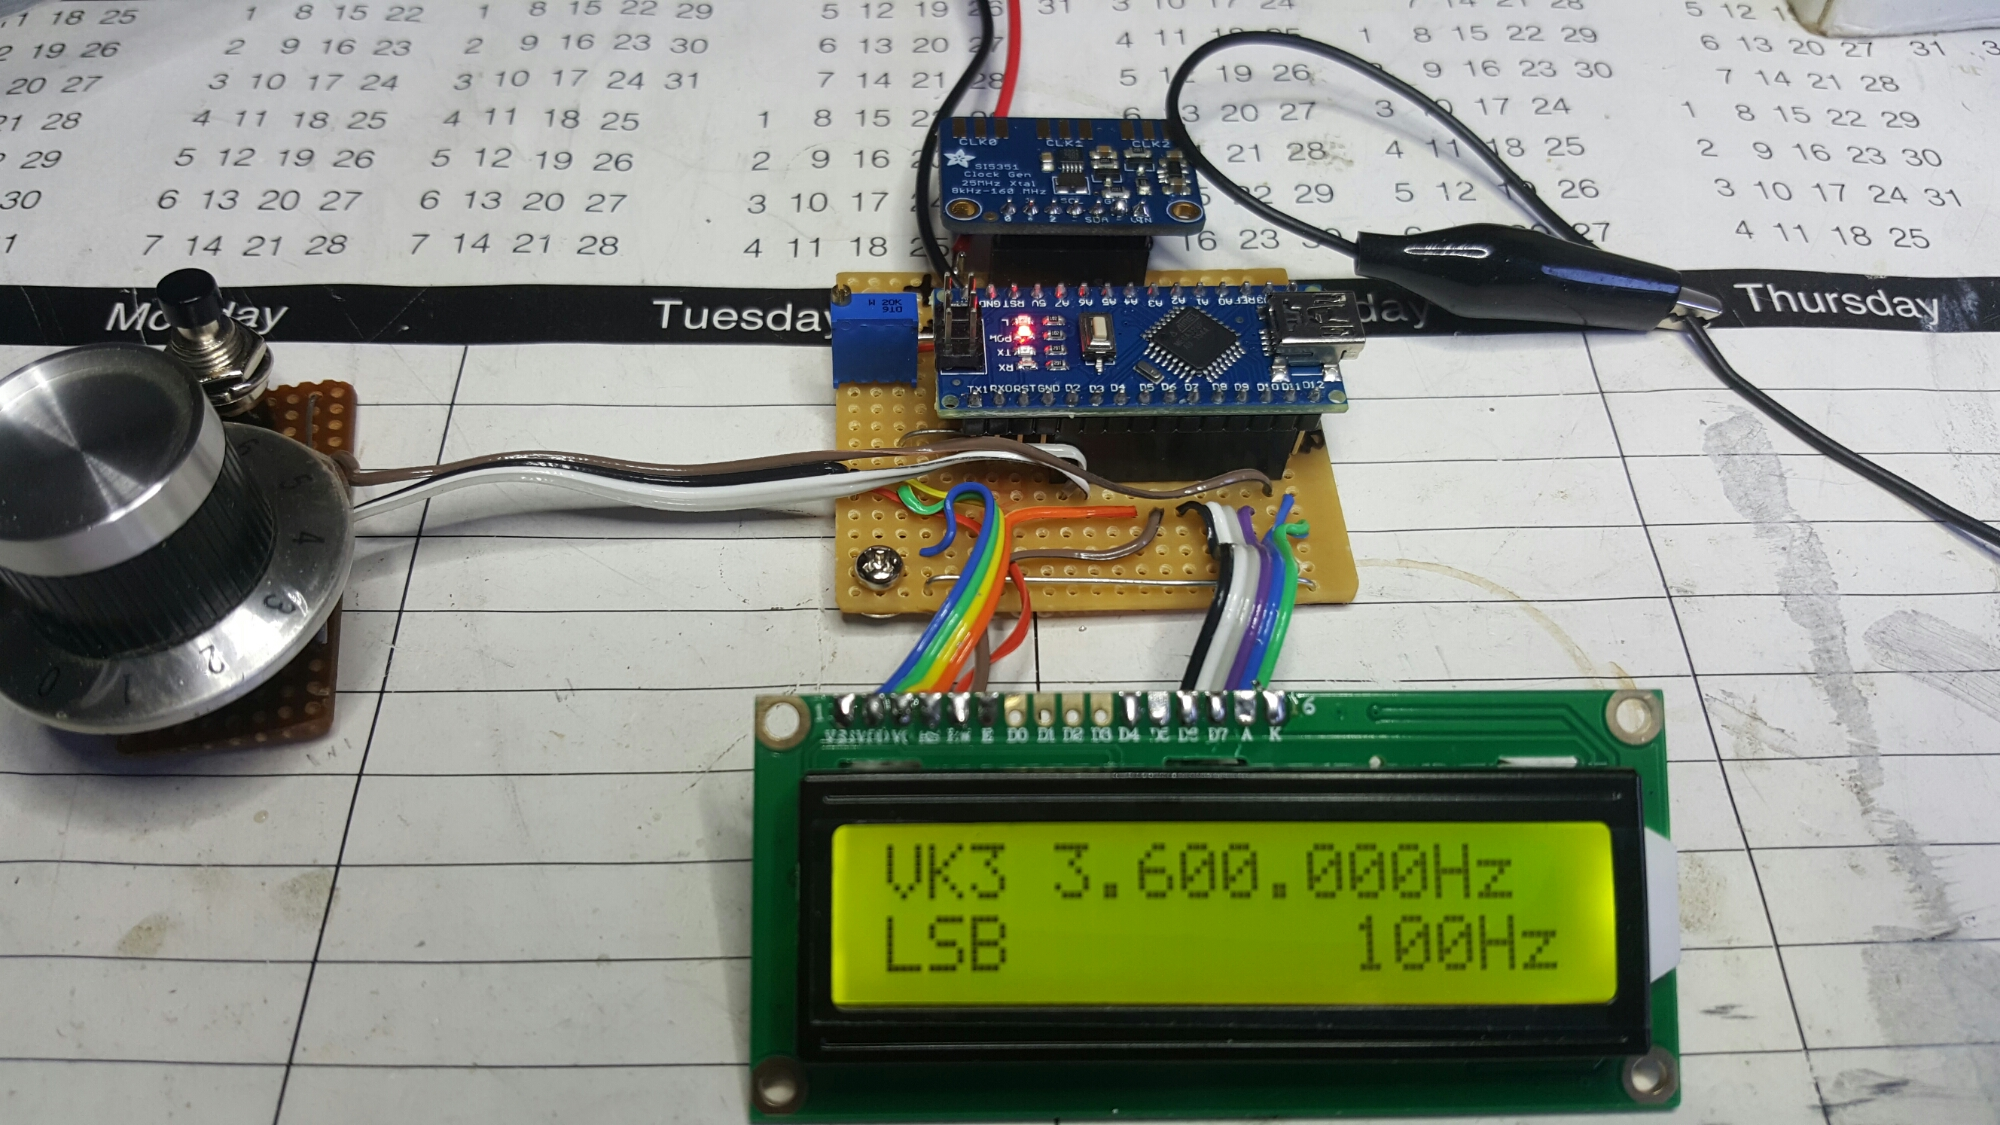 Yet Another Arduino Nano And Si5351 Digital Vfo Bfo Vk3hn S Meter Circuit Diagram The Key To It Is Three Clocks 1 160mhz All Software Controlled In A Tiny 10 Pin Msop Package For Few Dollars